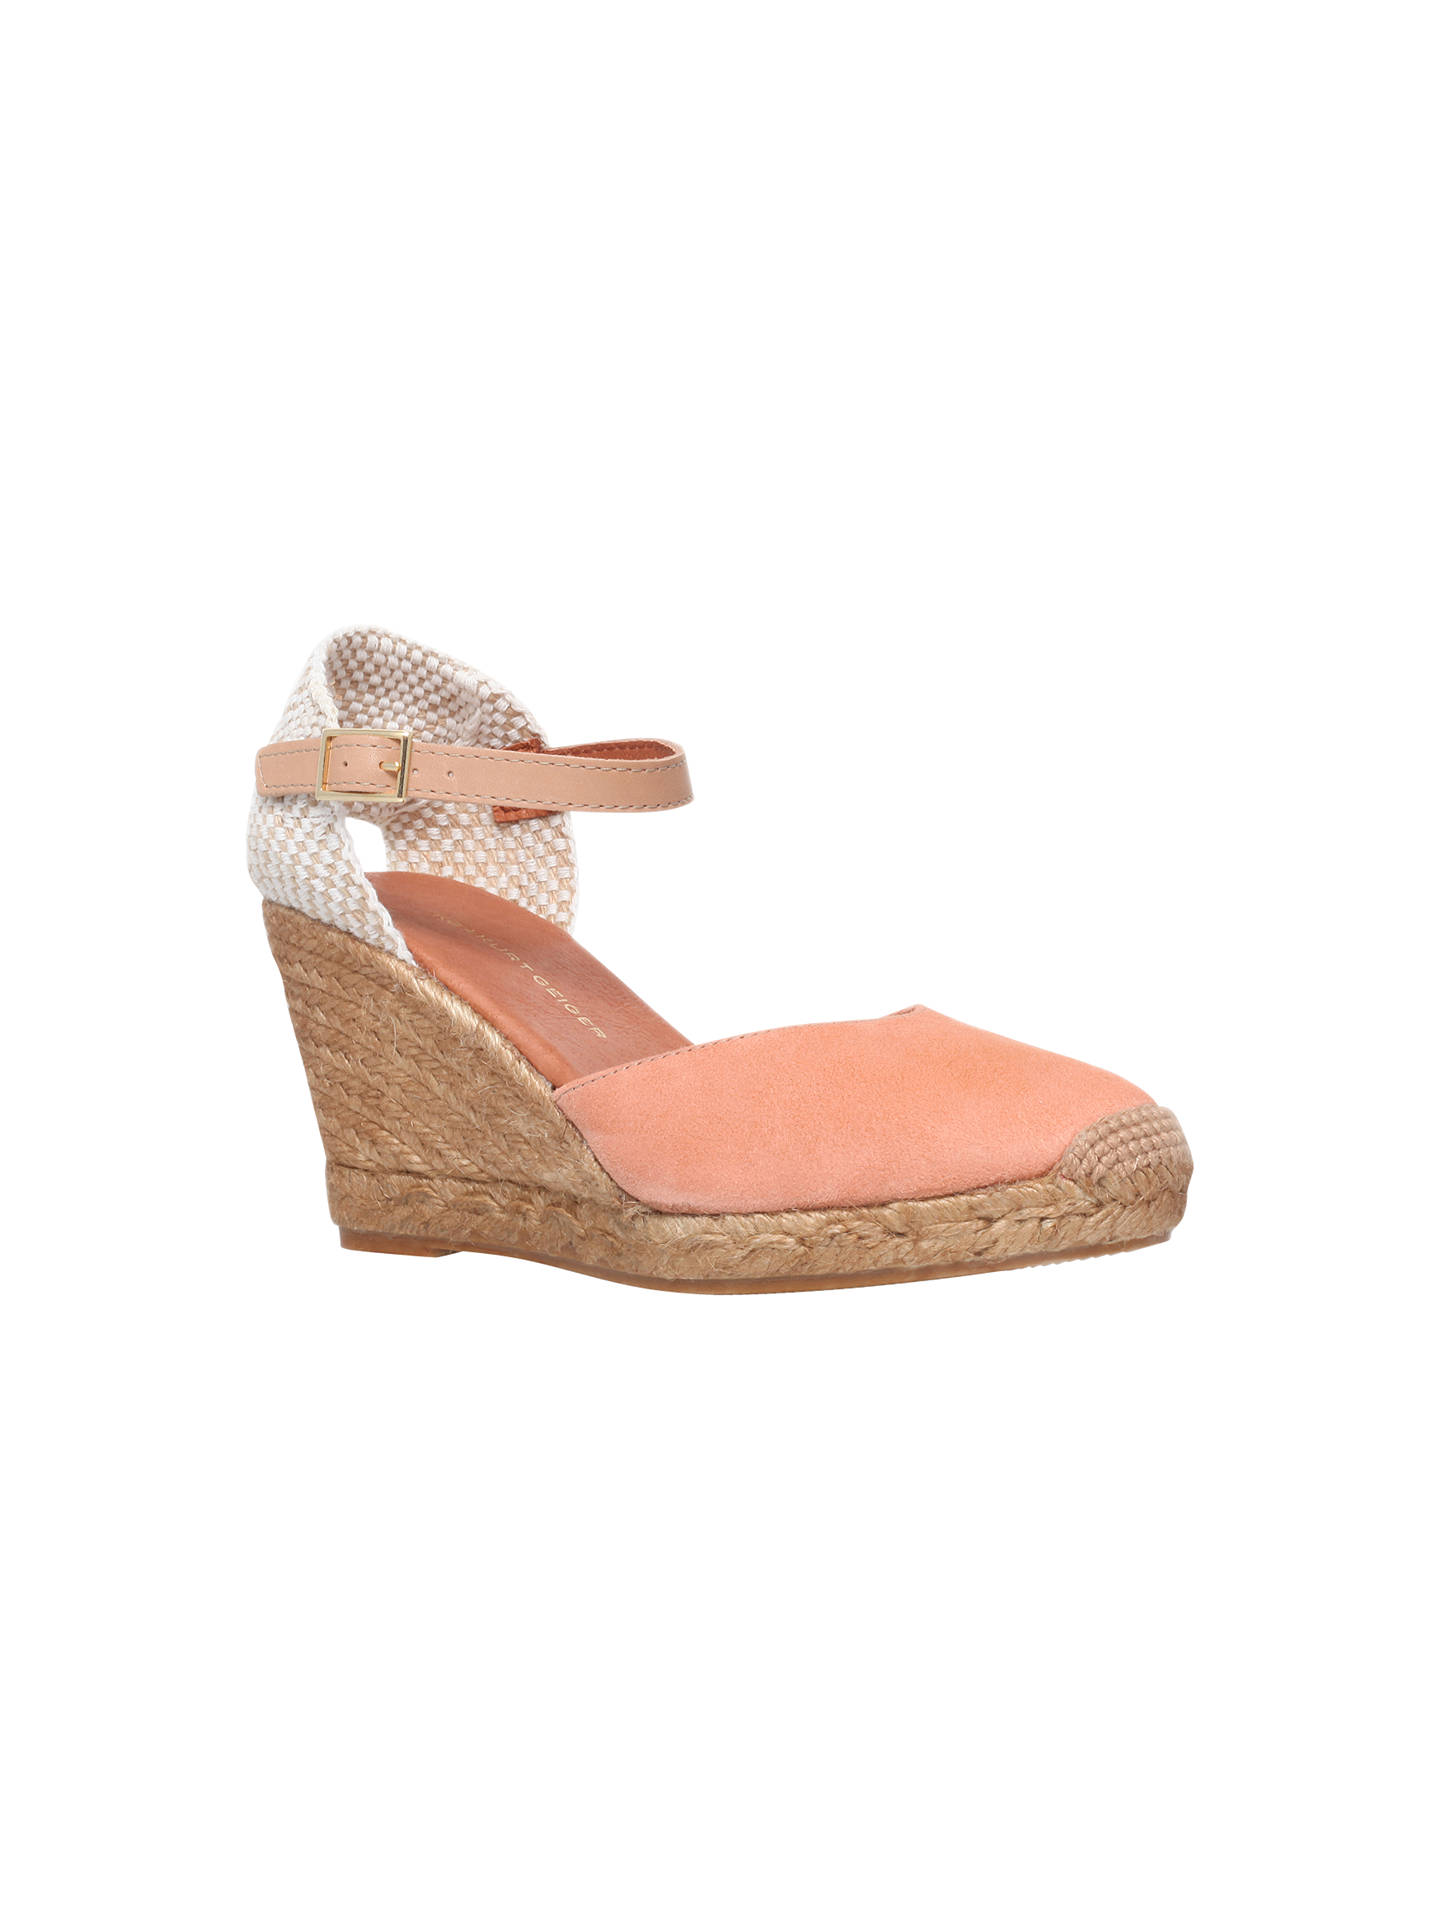 930f57f1de8 KG by Kurt Geiger Monty Wedge Heel Espadrilles at John Lewis & Partners